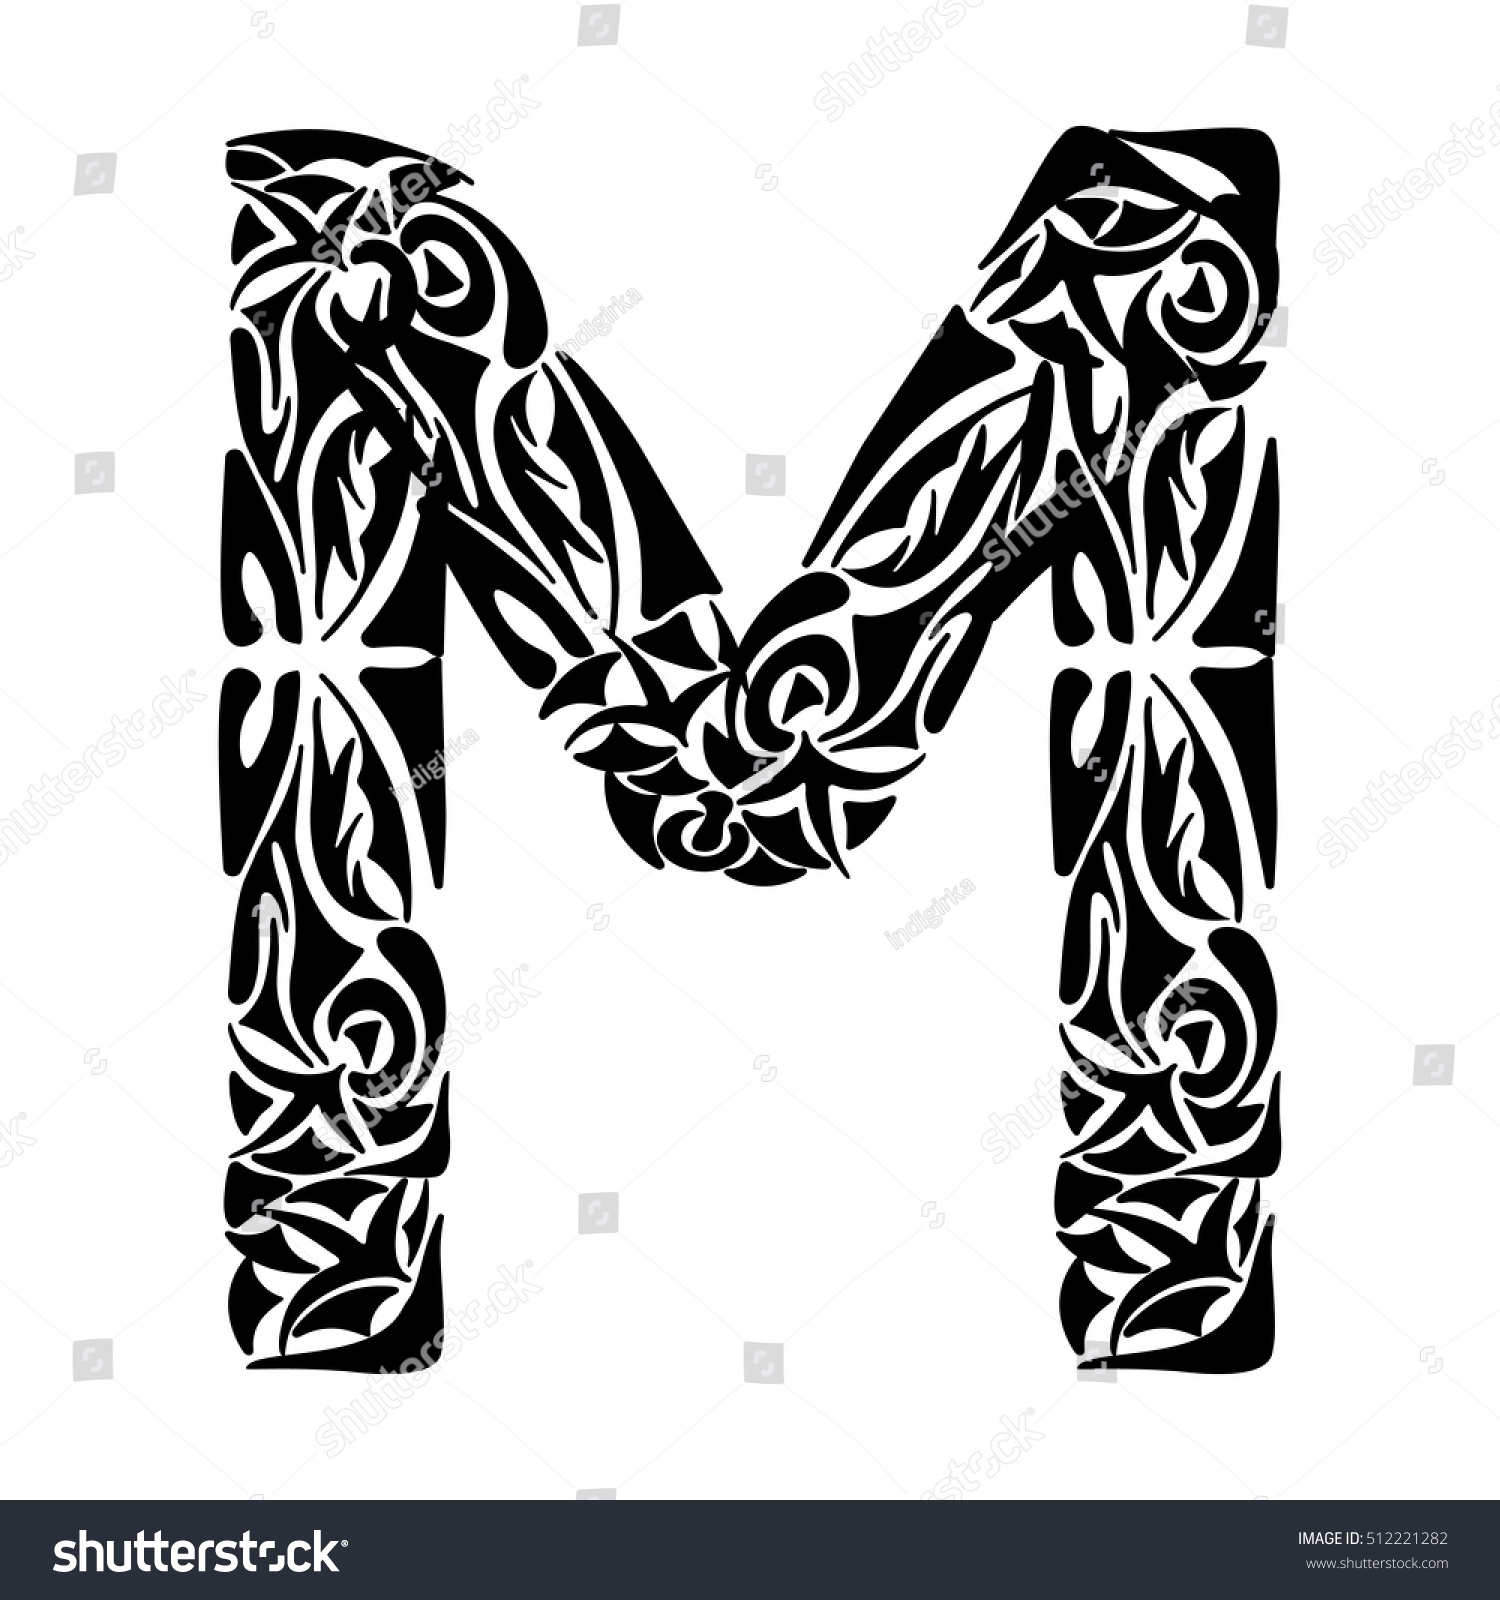 Royalty free polynesian tattoo initials tribal 512221282 stock polynesian tattoo initials tribal capital letter m vector illustration for coloring page tattoos altavistaventures Gallery